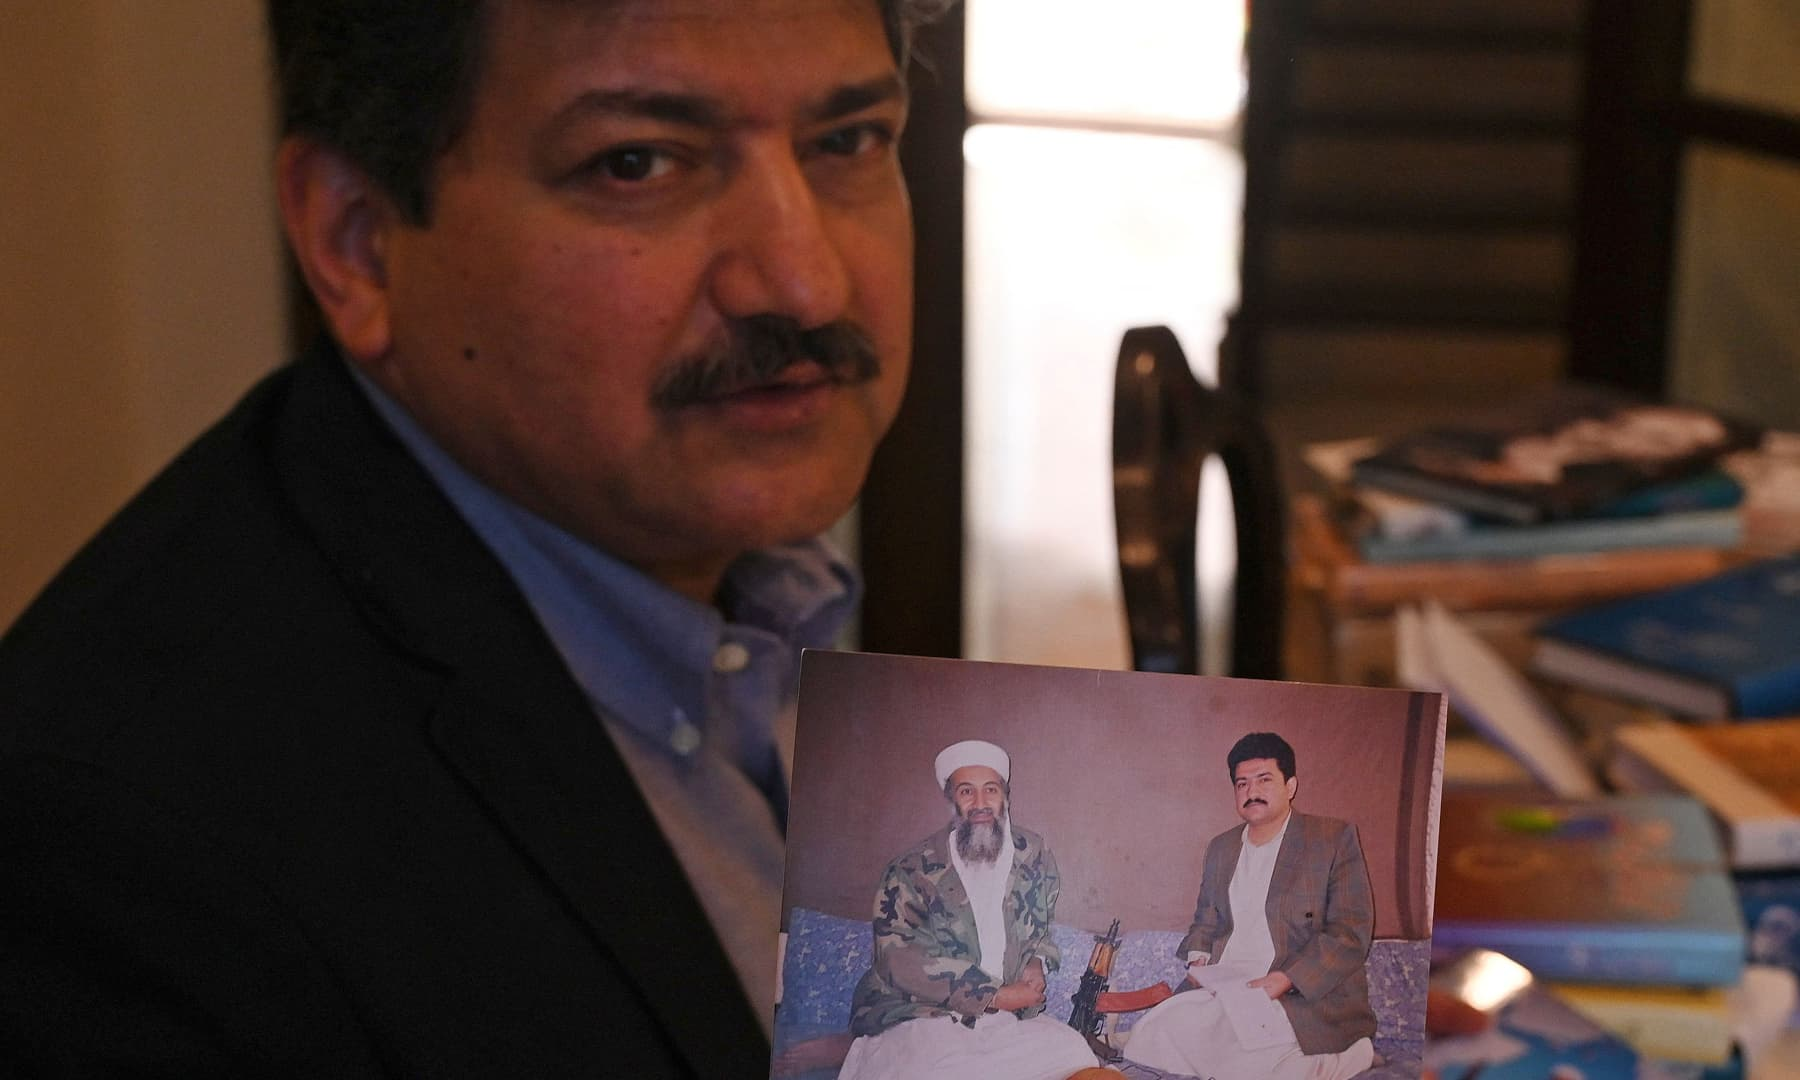 Prominent journalist Hamid Mir shows his photograph with Osama Bin Laden, when he interviewed him at an undisclosed location in Afghanisnan in the 1990s, during an interview with AFP in Islamabad on April 27, 2021. — AFP